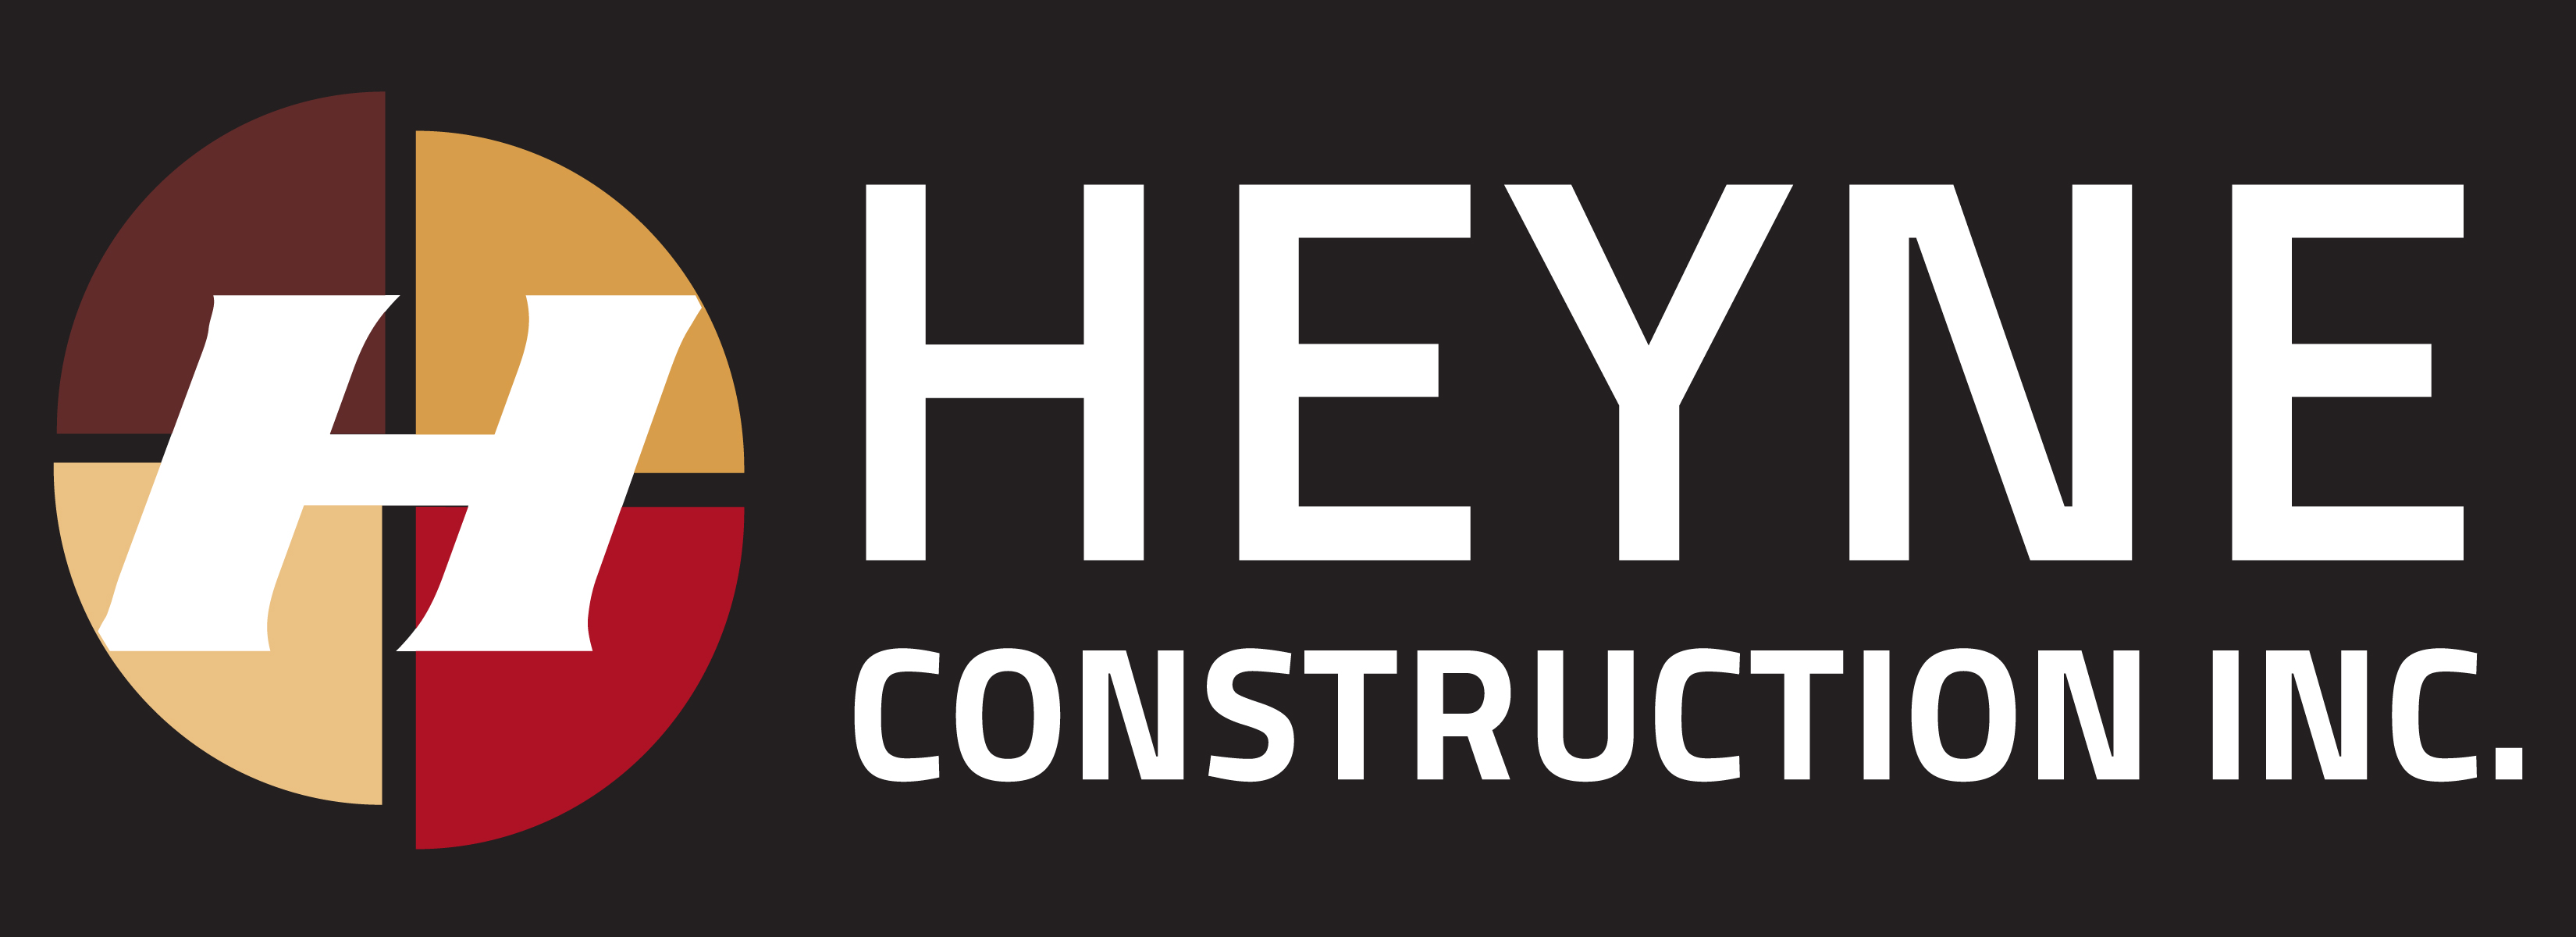 Heyne Construction Inc.